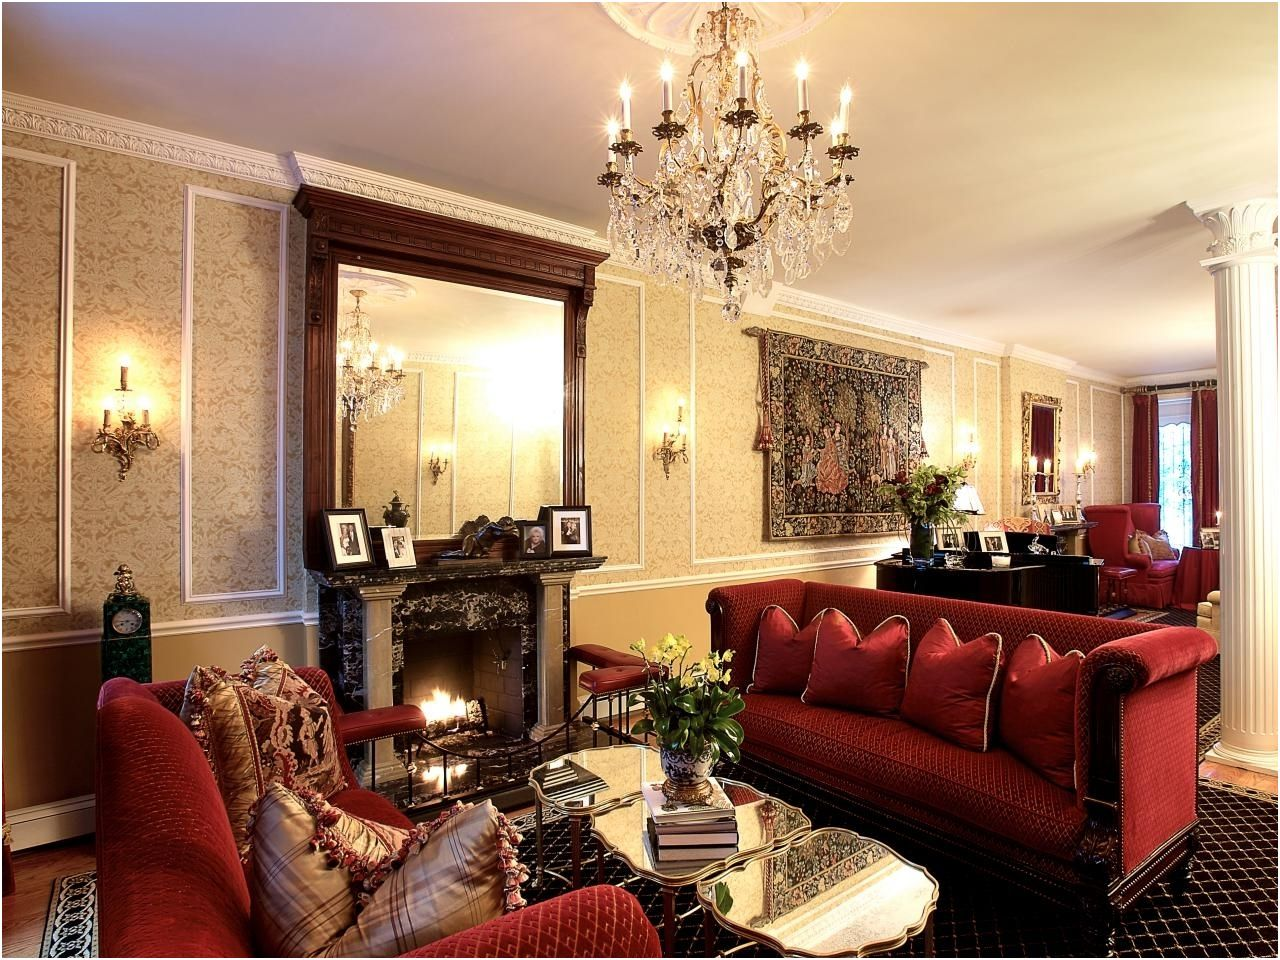 60 Pascher Red and Brown Living Room Photos | Living room ...